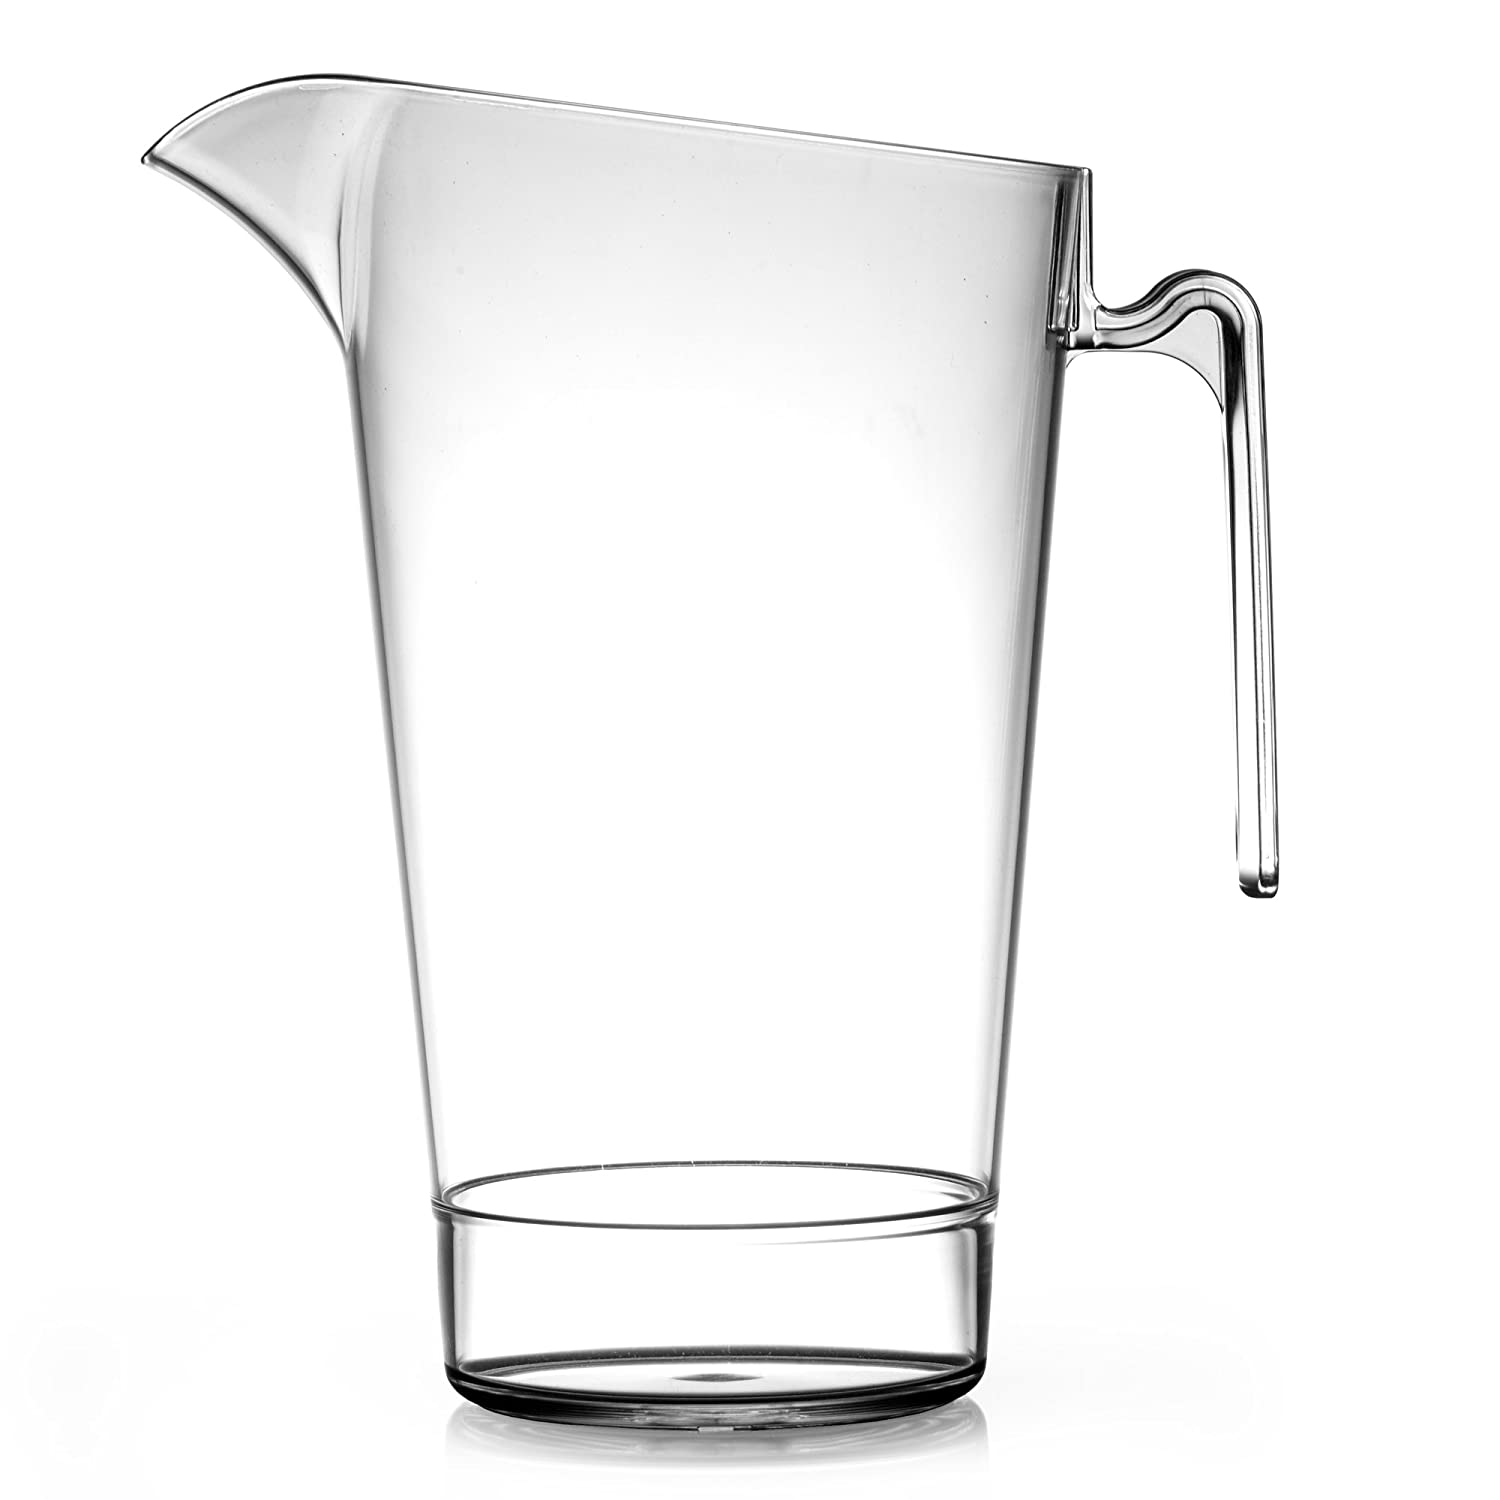 Elite In2stax 4 Pint Polycarbonate Stacking Jug LCE 2.2 Litre - Set of 4 - Graduated Plastic Beer Pitcher BBP Marketing Ltd